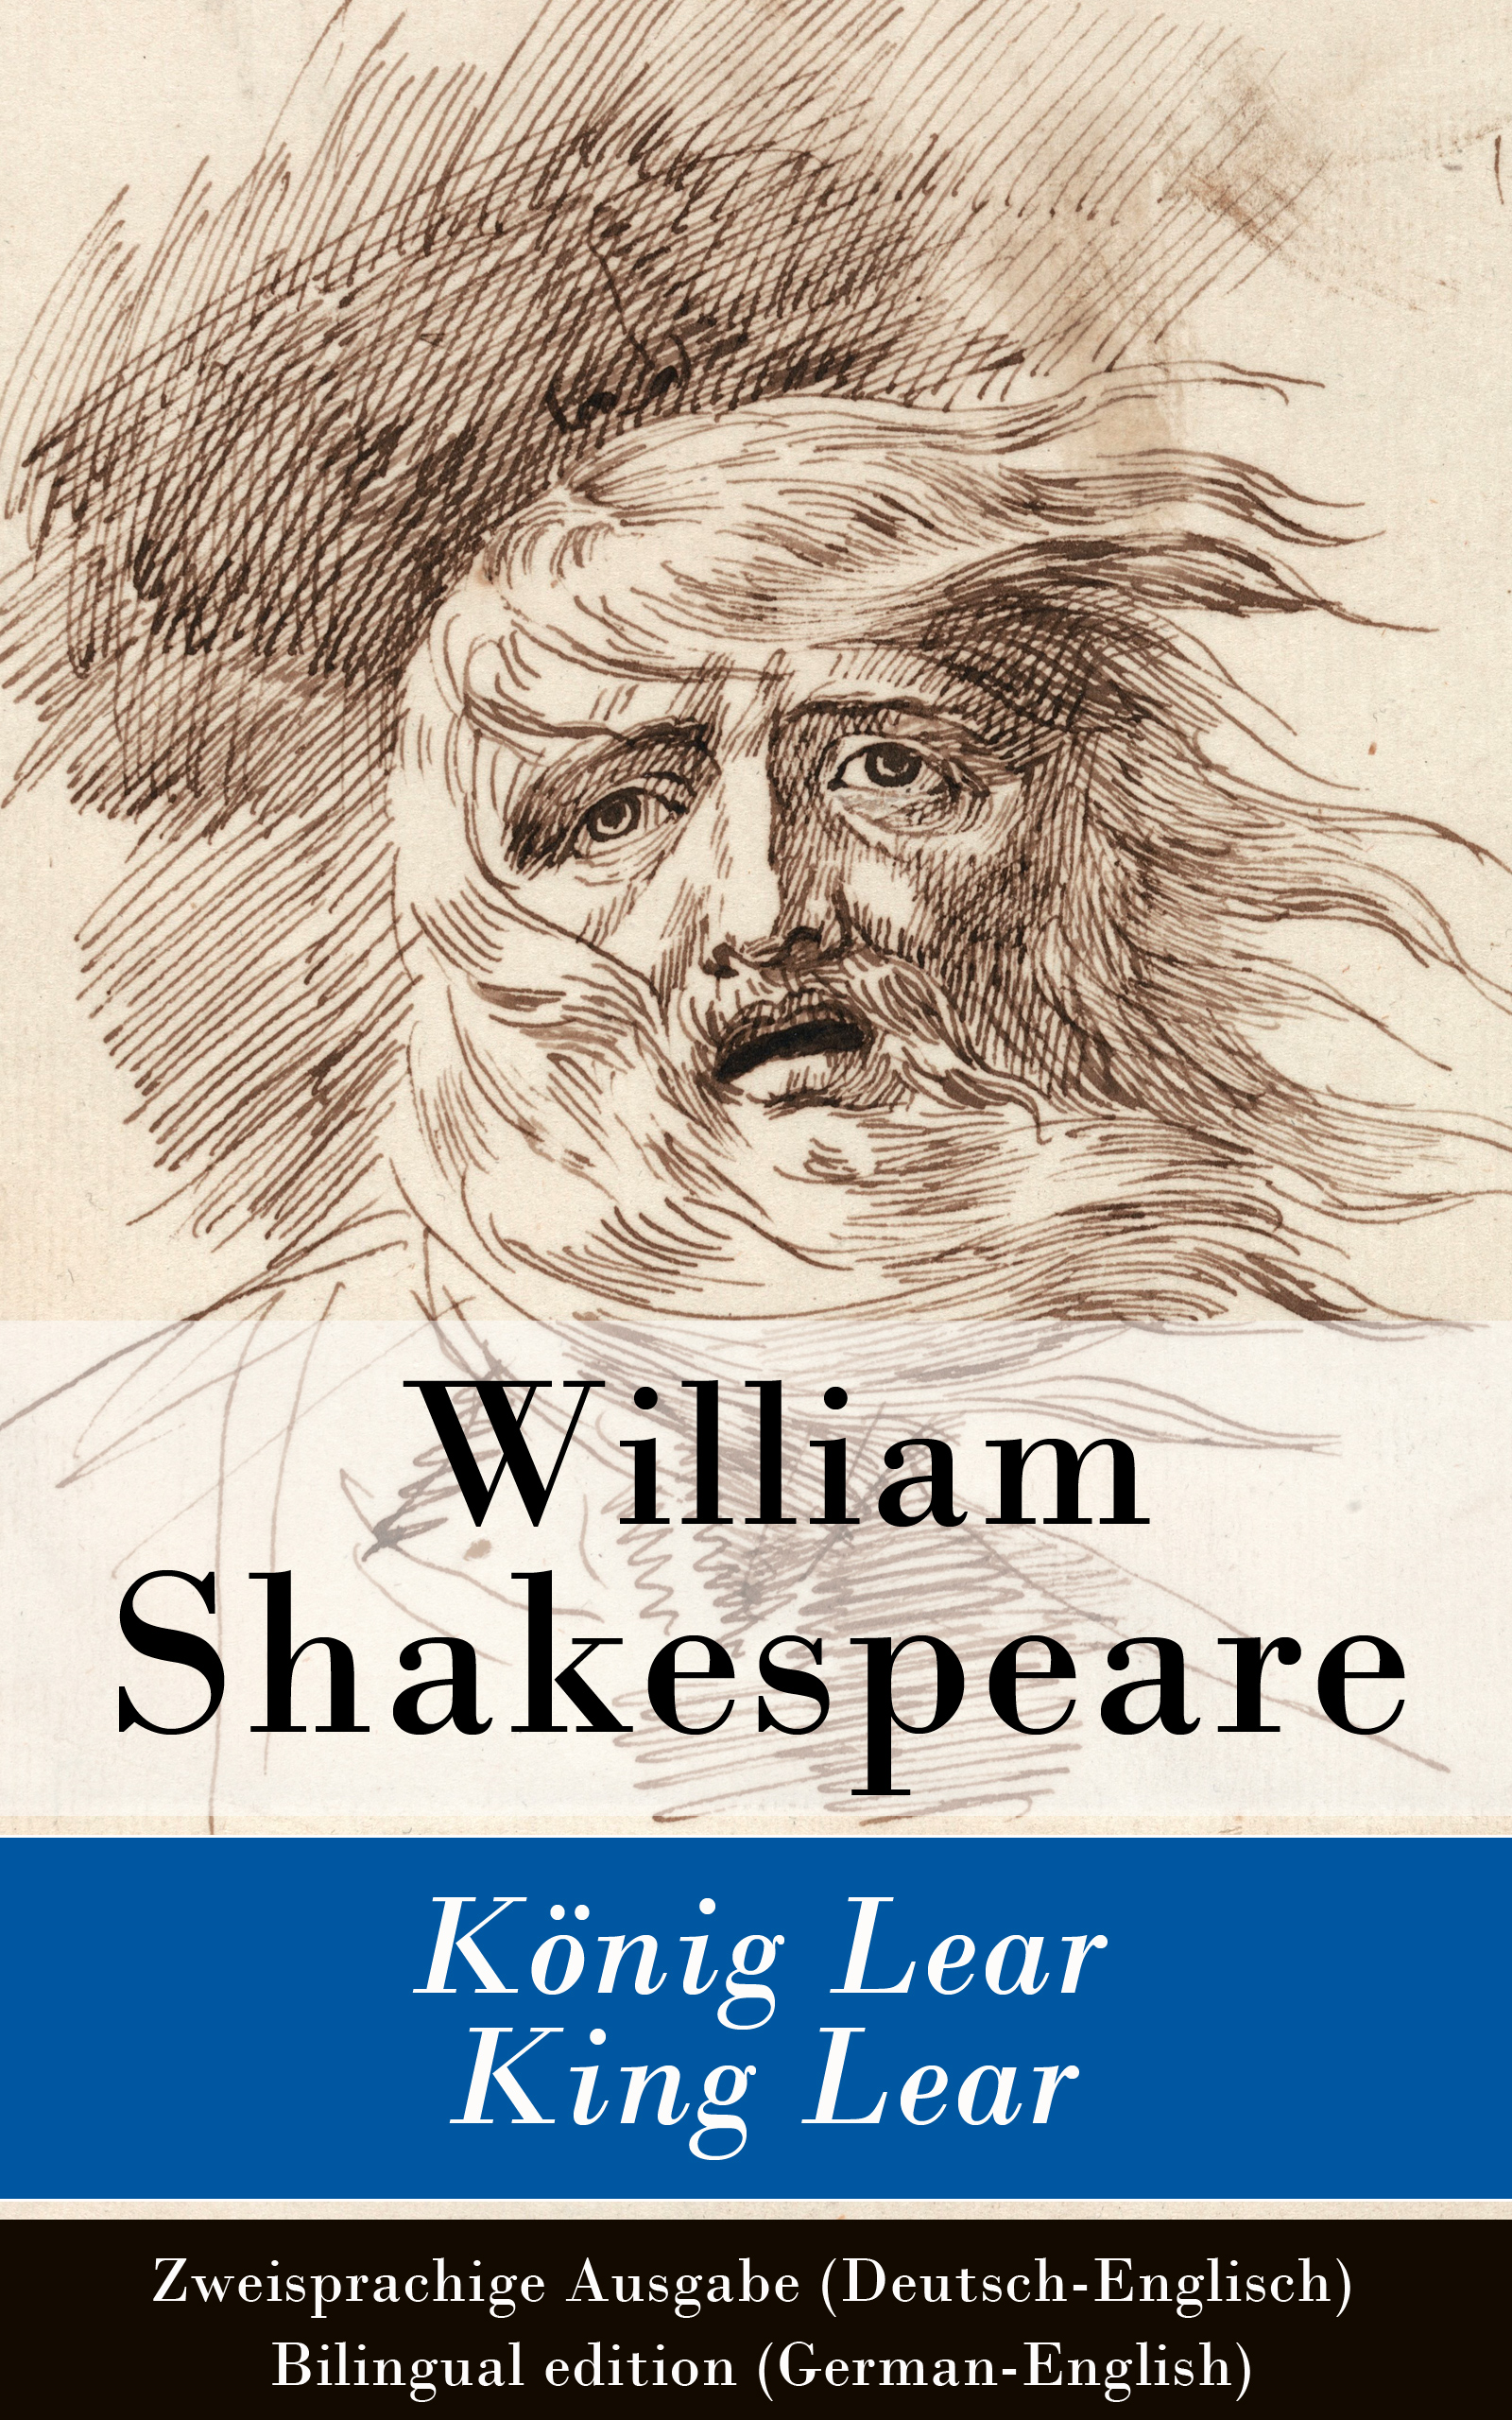 konig lear king lear zweisprachige ausgabe deutsch englisch bilingual edition german english